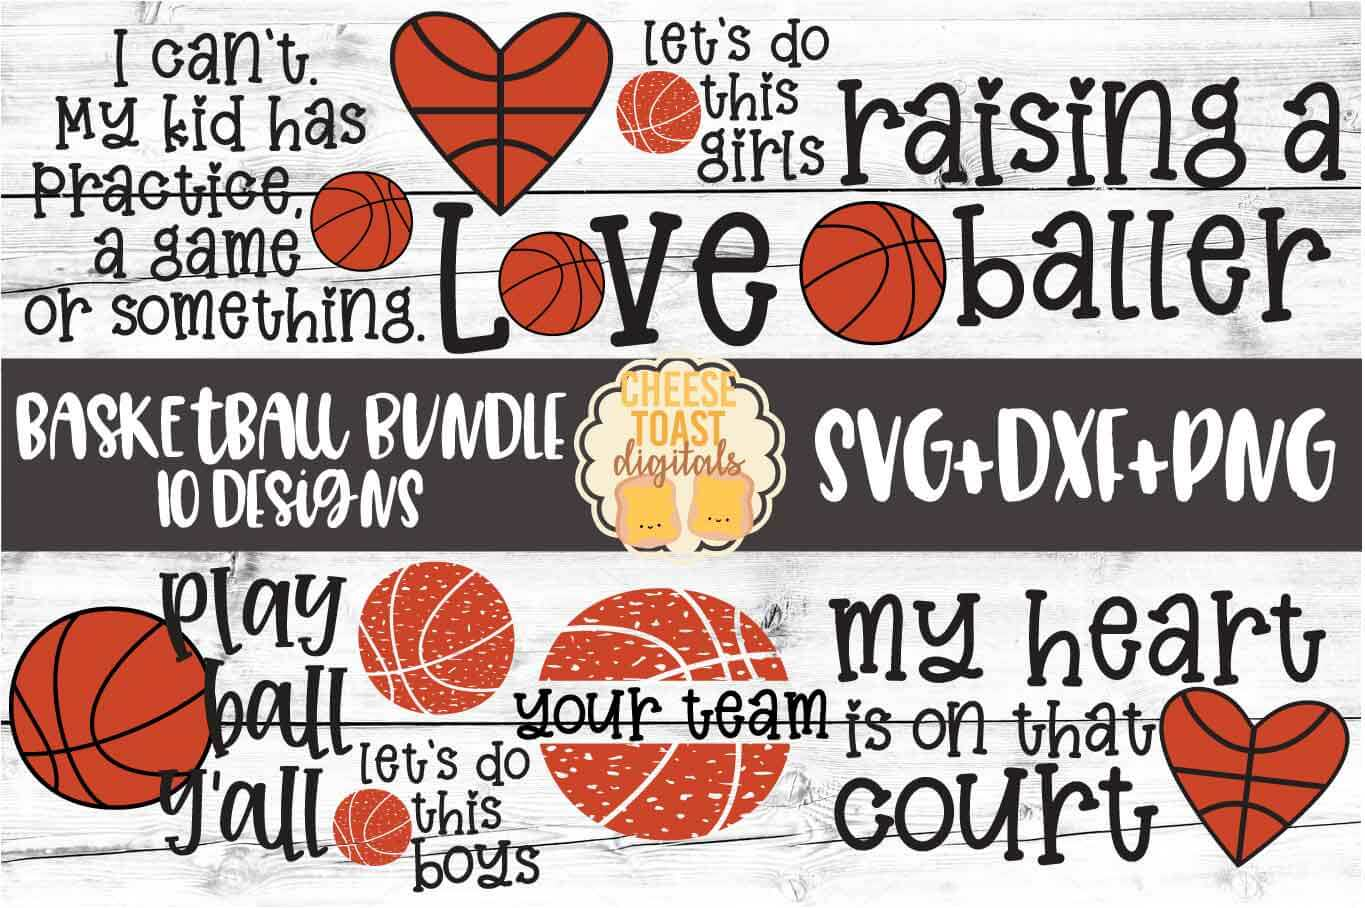 Basketball Bundle - 10 Designs - SVG PNG DXF Cut Files example image 1